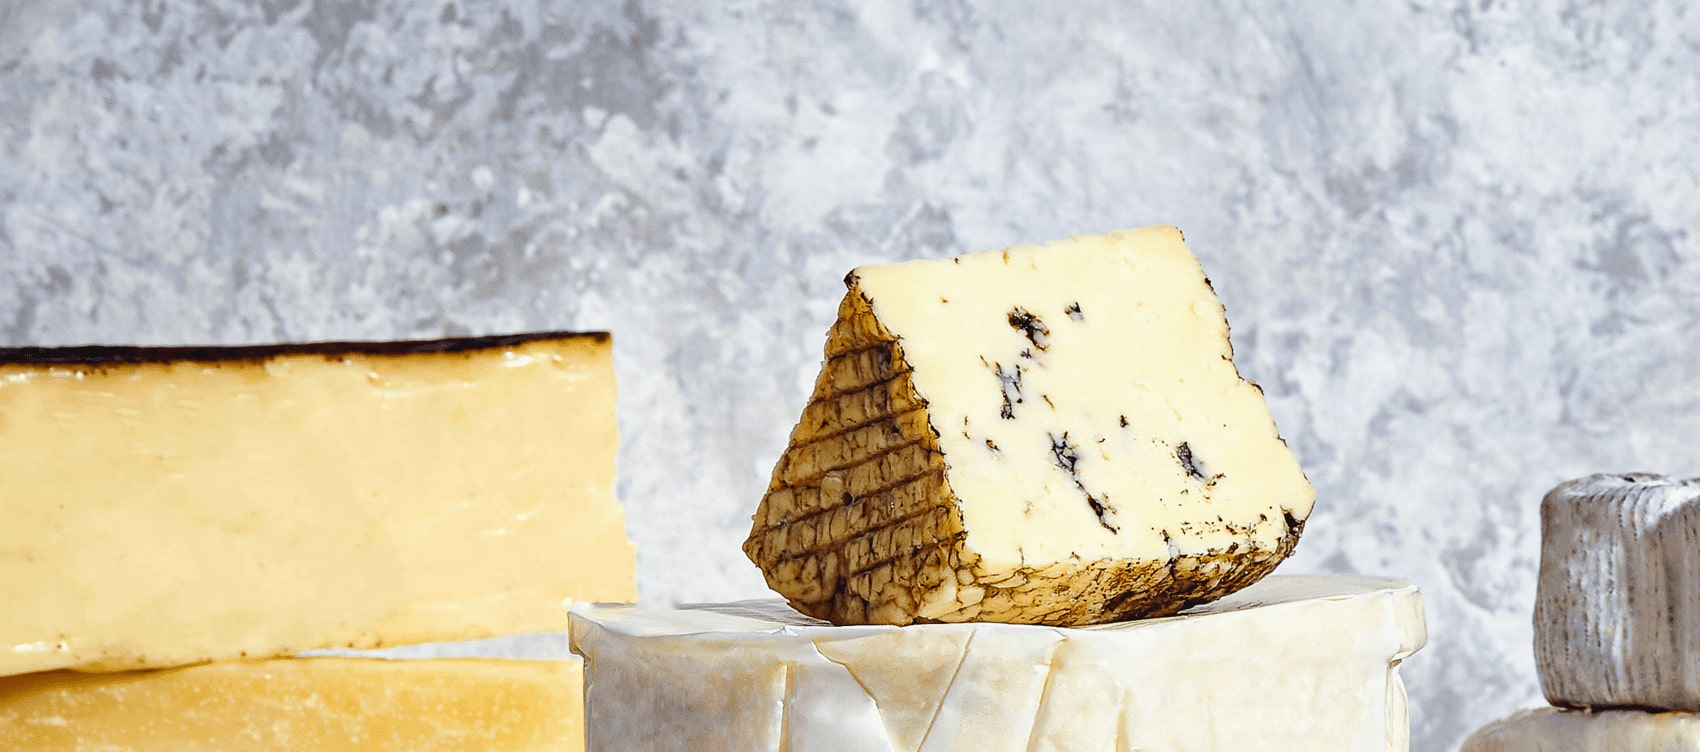 Market stall cheeses